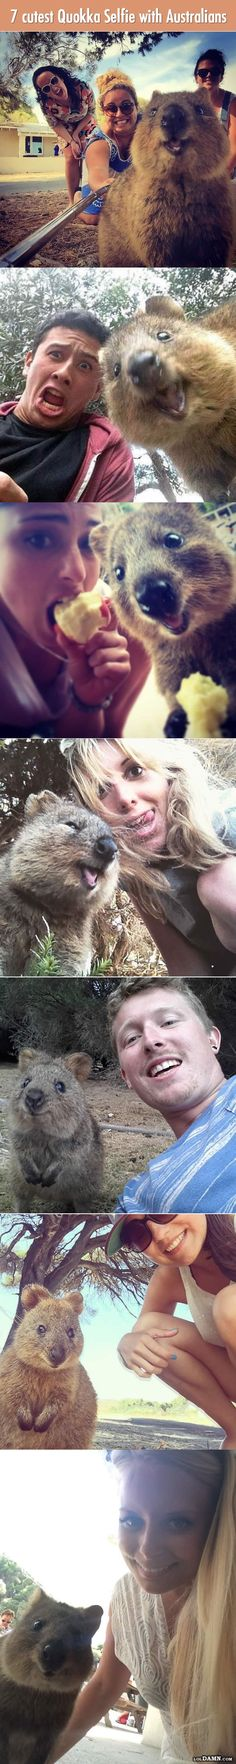 Traveling in Australia? Don't forget to take a cute Quokka selfie. |LOL, Damn! Funny and Awesome pictures.